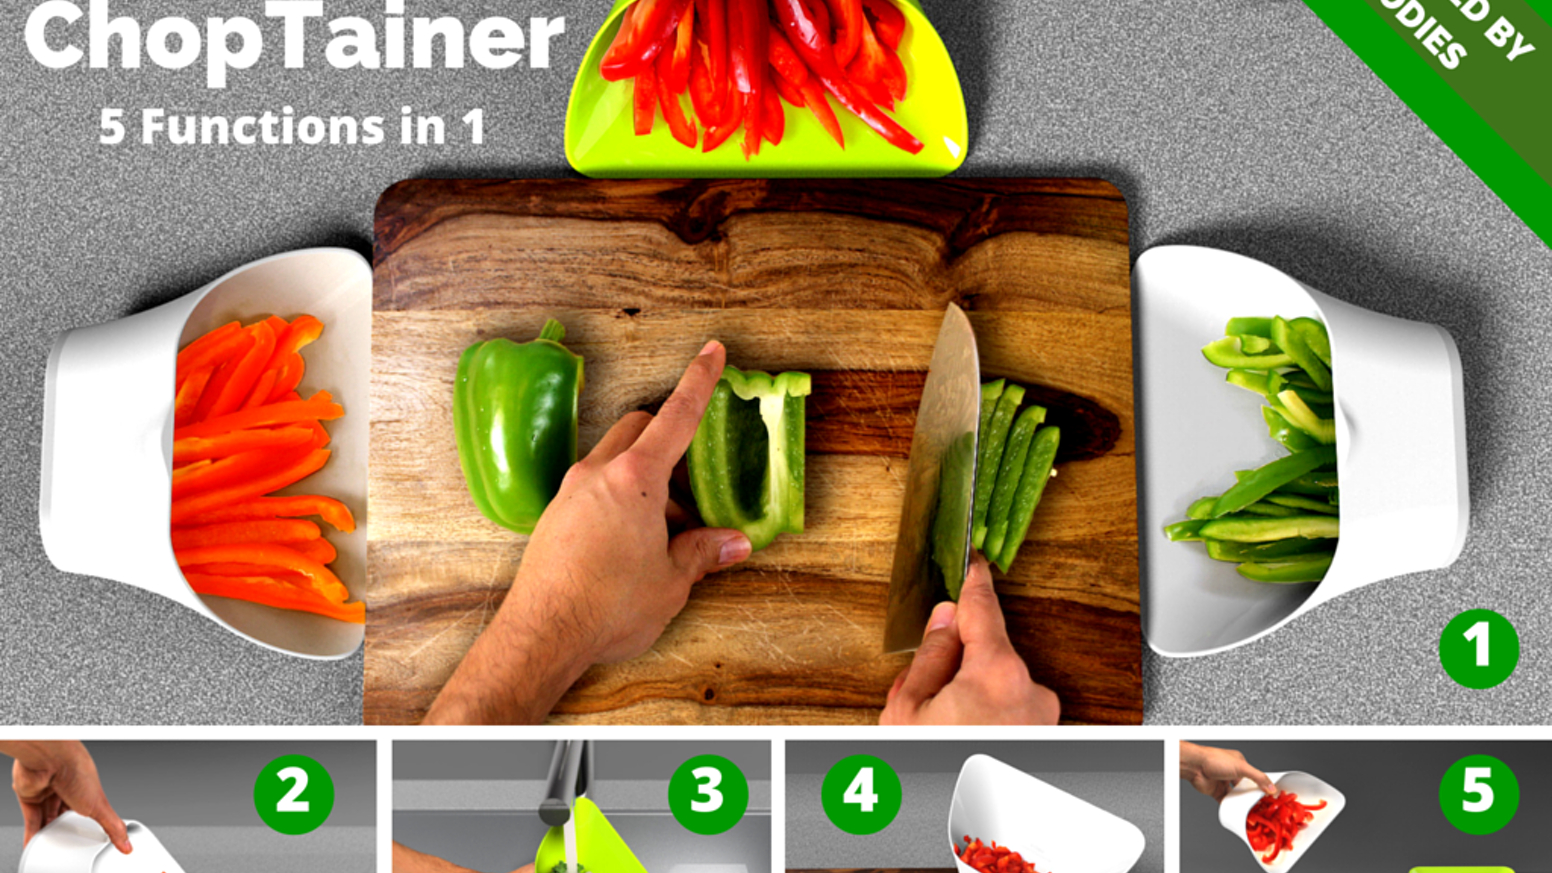 This contemporary all-in-one container can be used to collect, rinse, measure and pour ingredients being chopped on a cutting board.